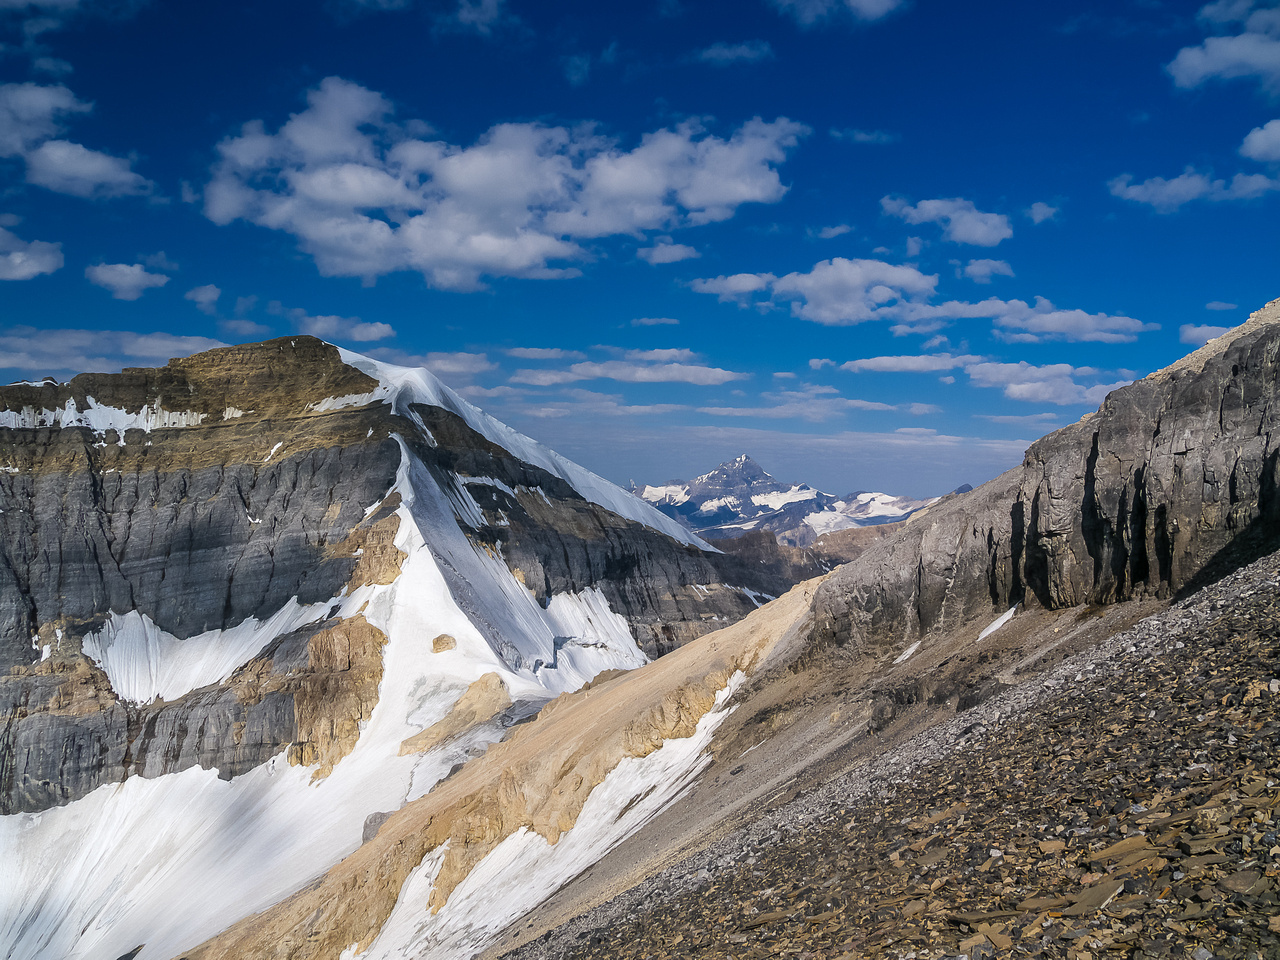 This is looking left of the previous photo at the White Pyramid col and the scree traverse around the cliff band.